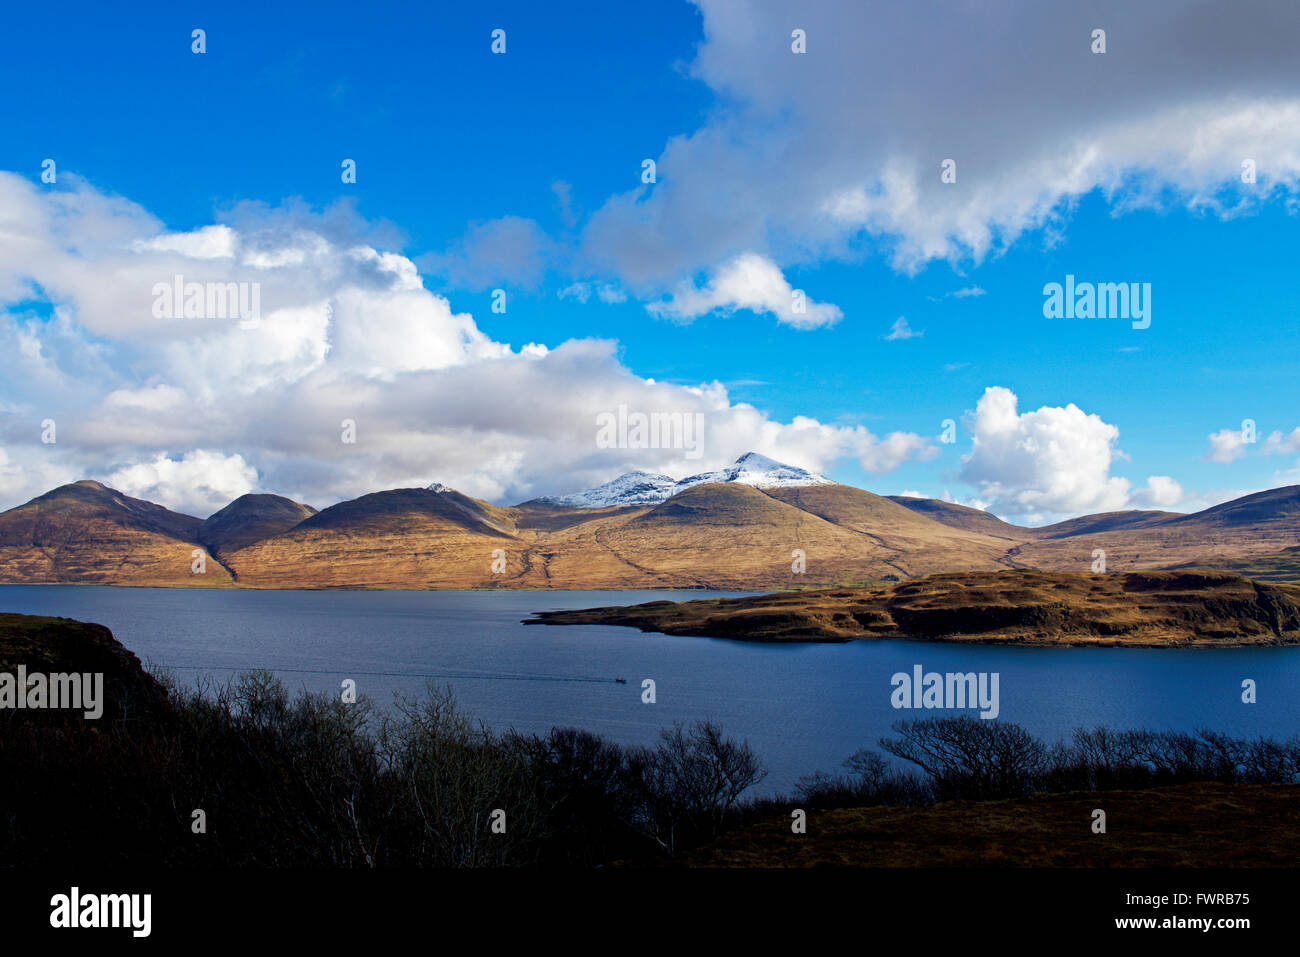 Loch na Keal and Ben More, Isle of Mull, Aygyll and Bute, Scotland UK - Stock Image